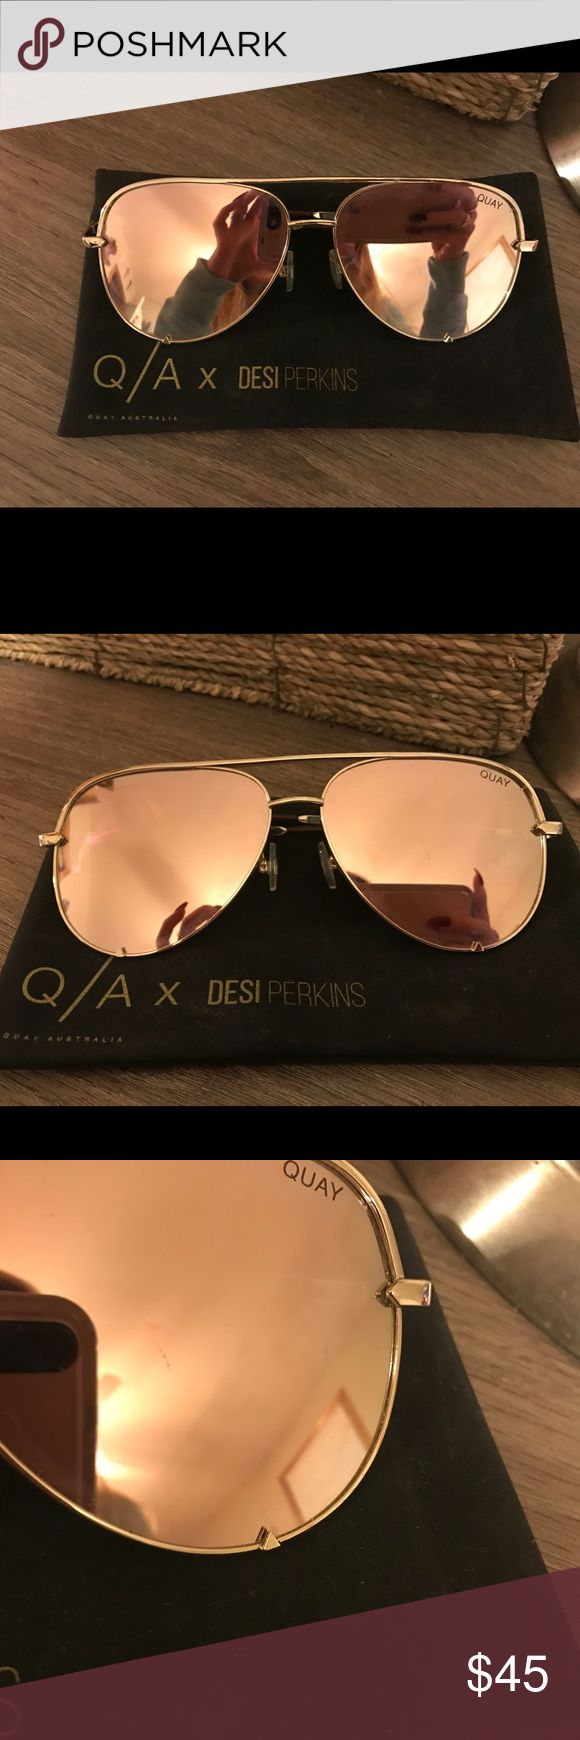 Quay High Key sunglasses High key quay sunglasses! Only worn a few times. I love these but there too big for my face. There's only one little scratch. Other than that they are like brand new! Also come with the case Quay Australia Accessories Sunglasses